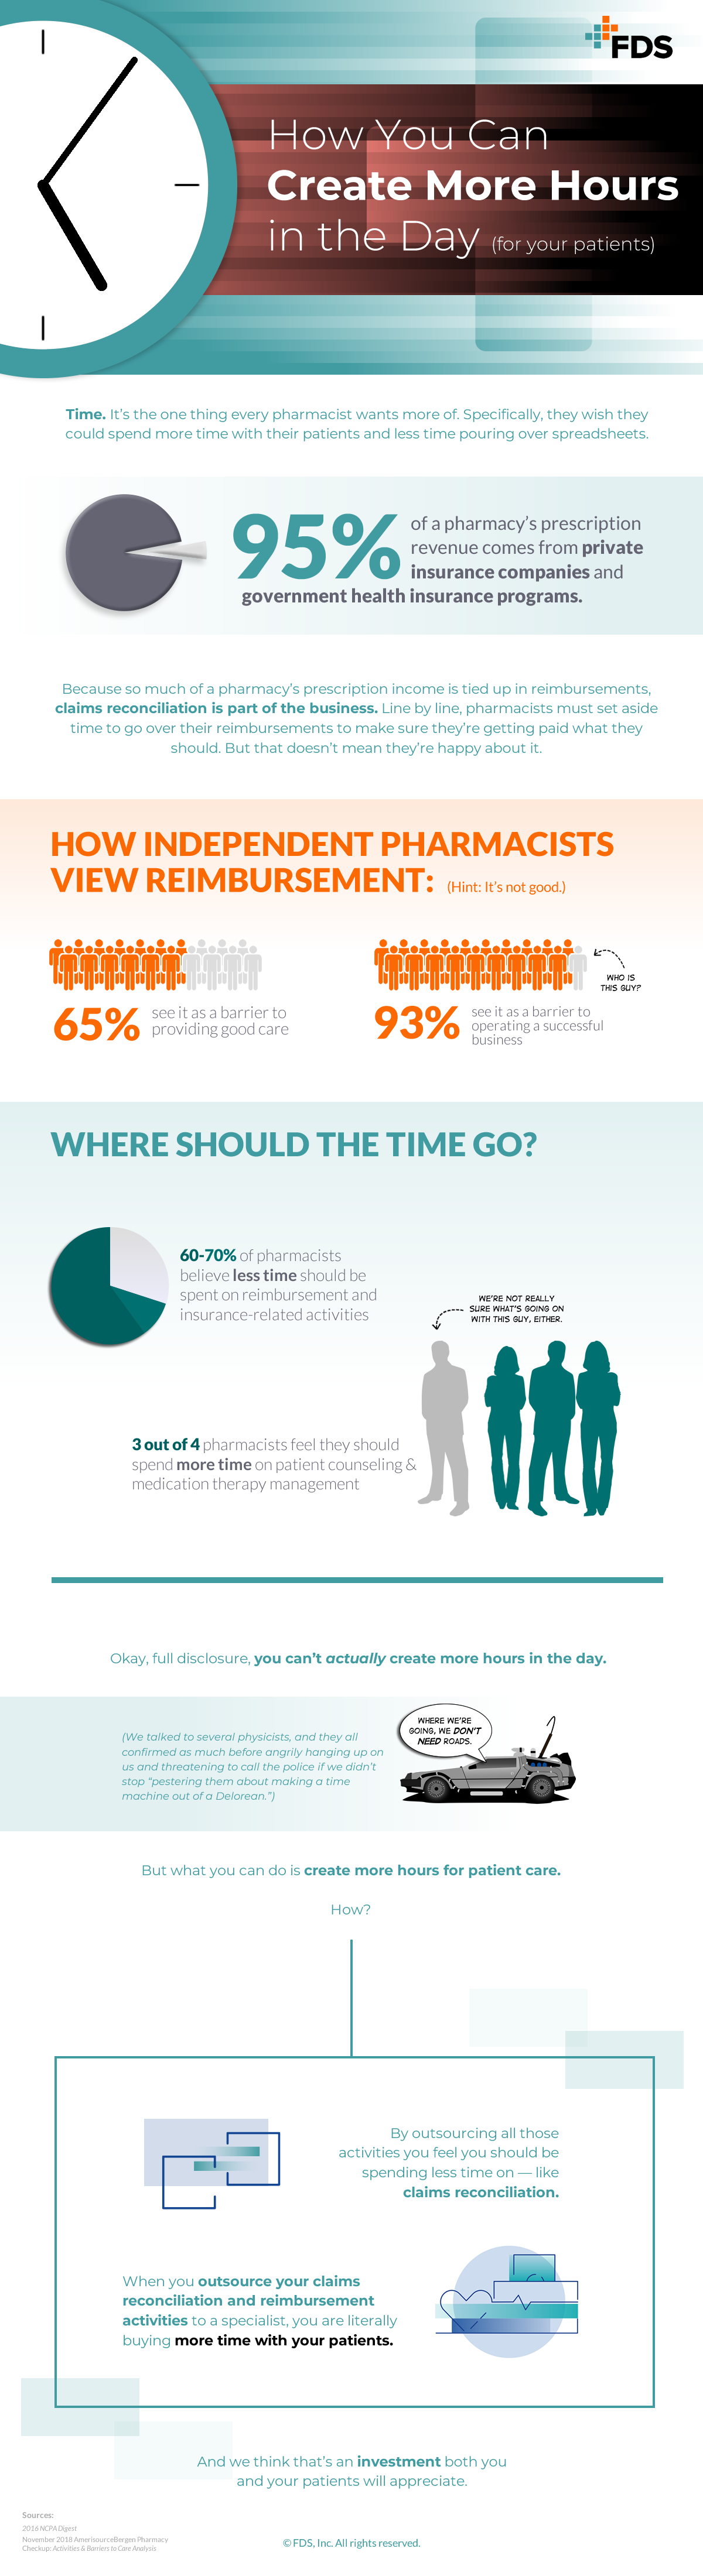 fds - more hours in the day - full infographic